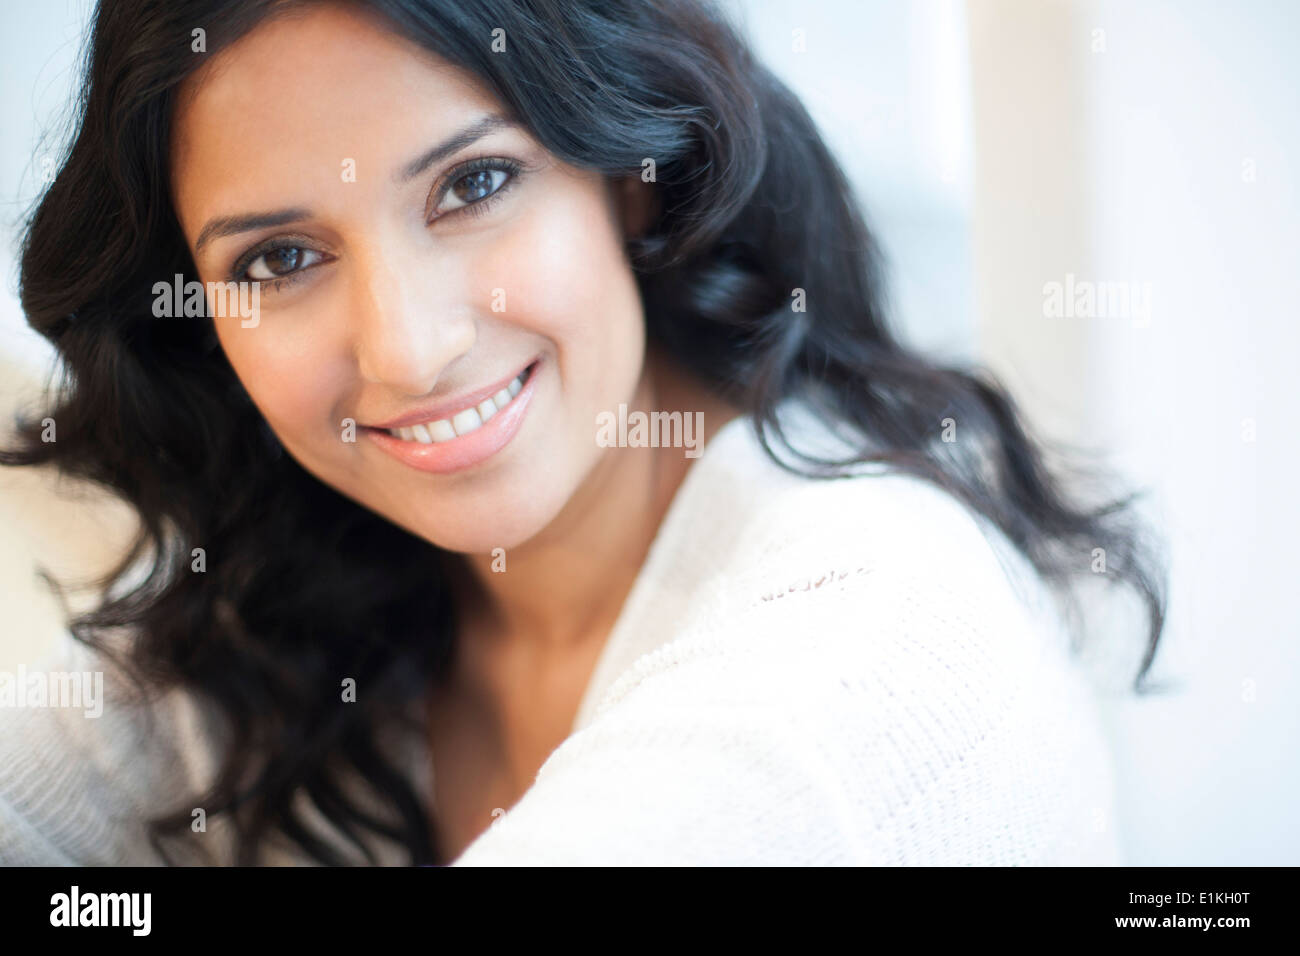 MODEL RELEASED Portrait of a woman smiling. - Stock Image